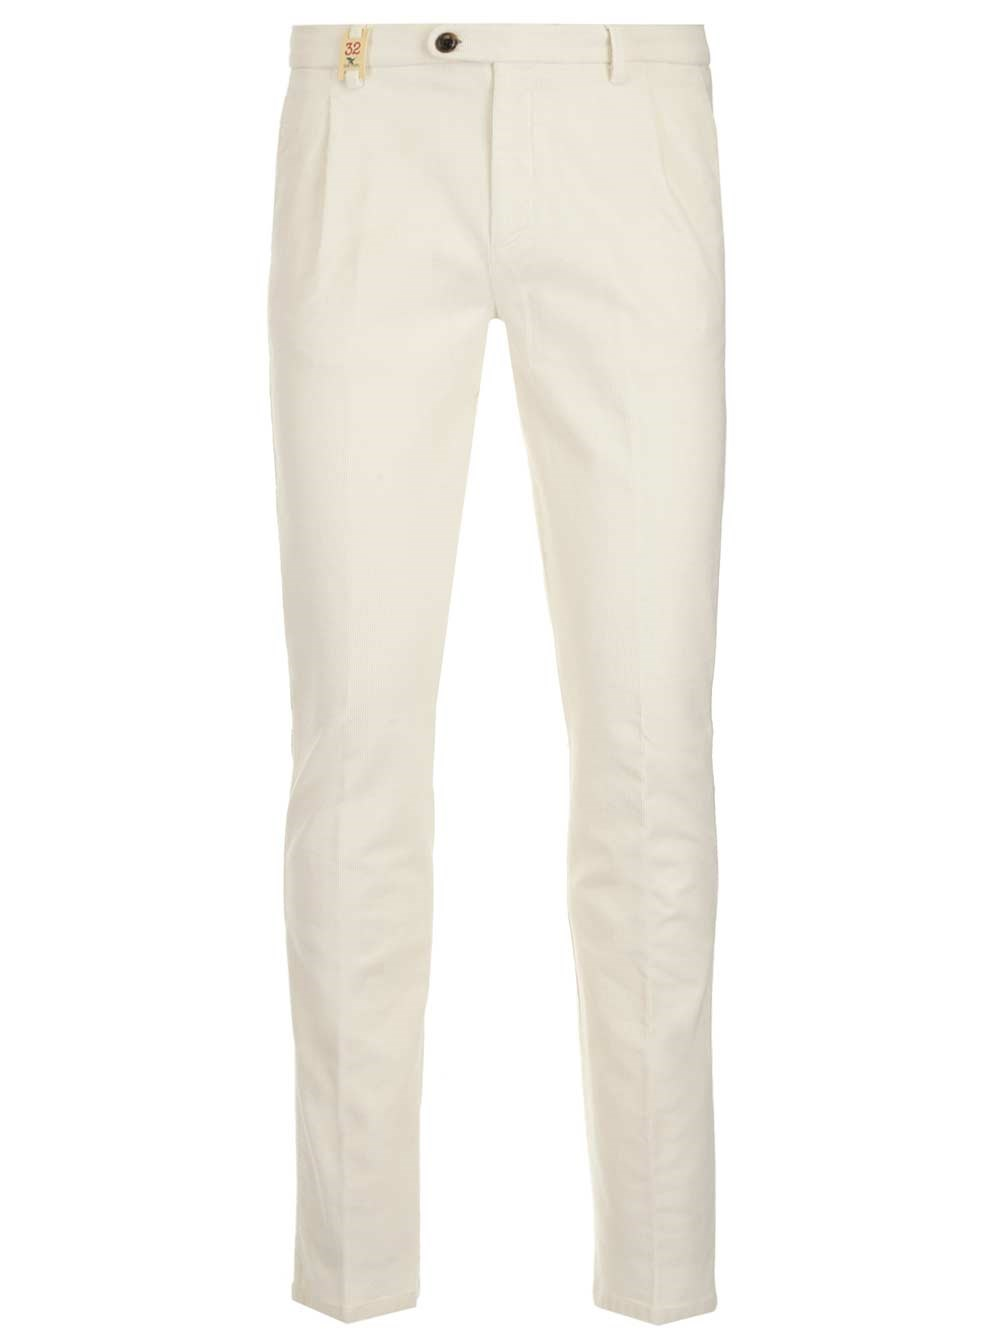 BARMAS White Velvet Trousers